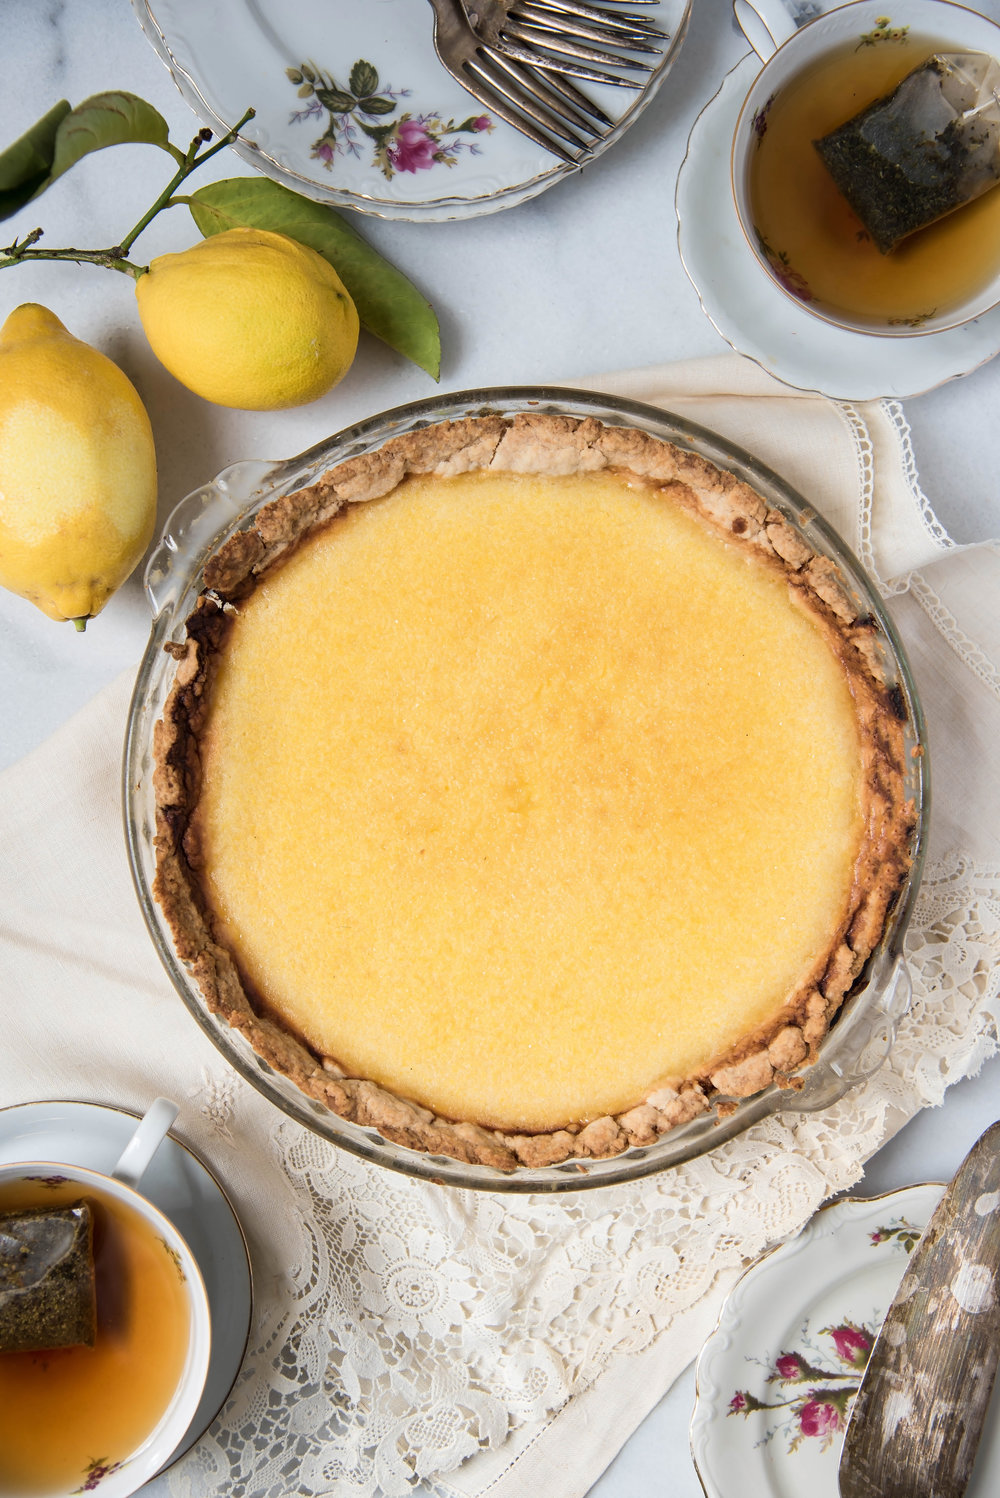 ROSE & IVY Journal Coconut Lemon Chess Pie